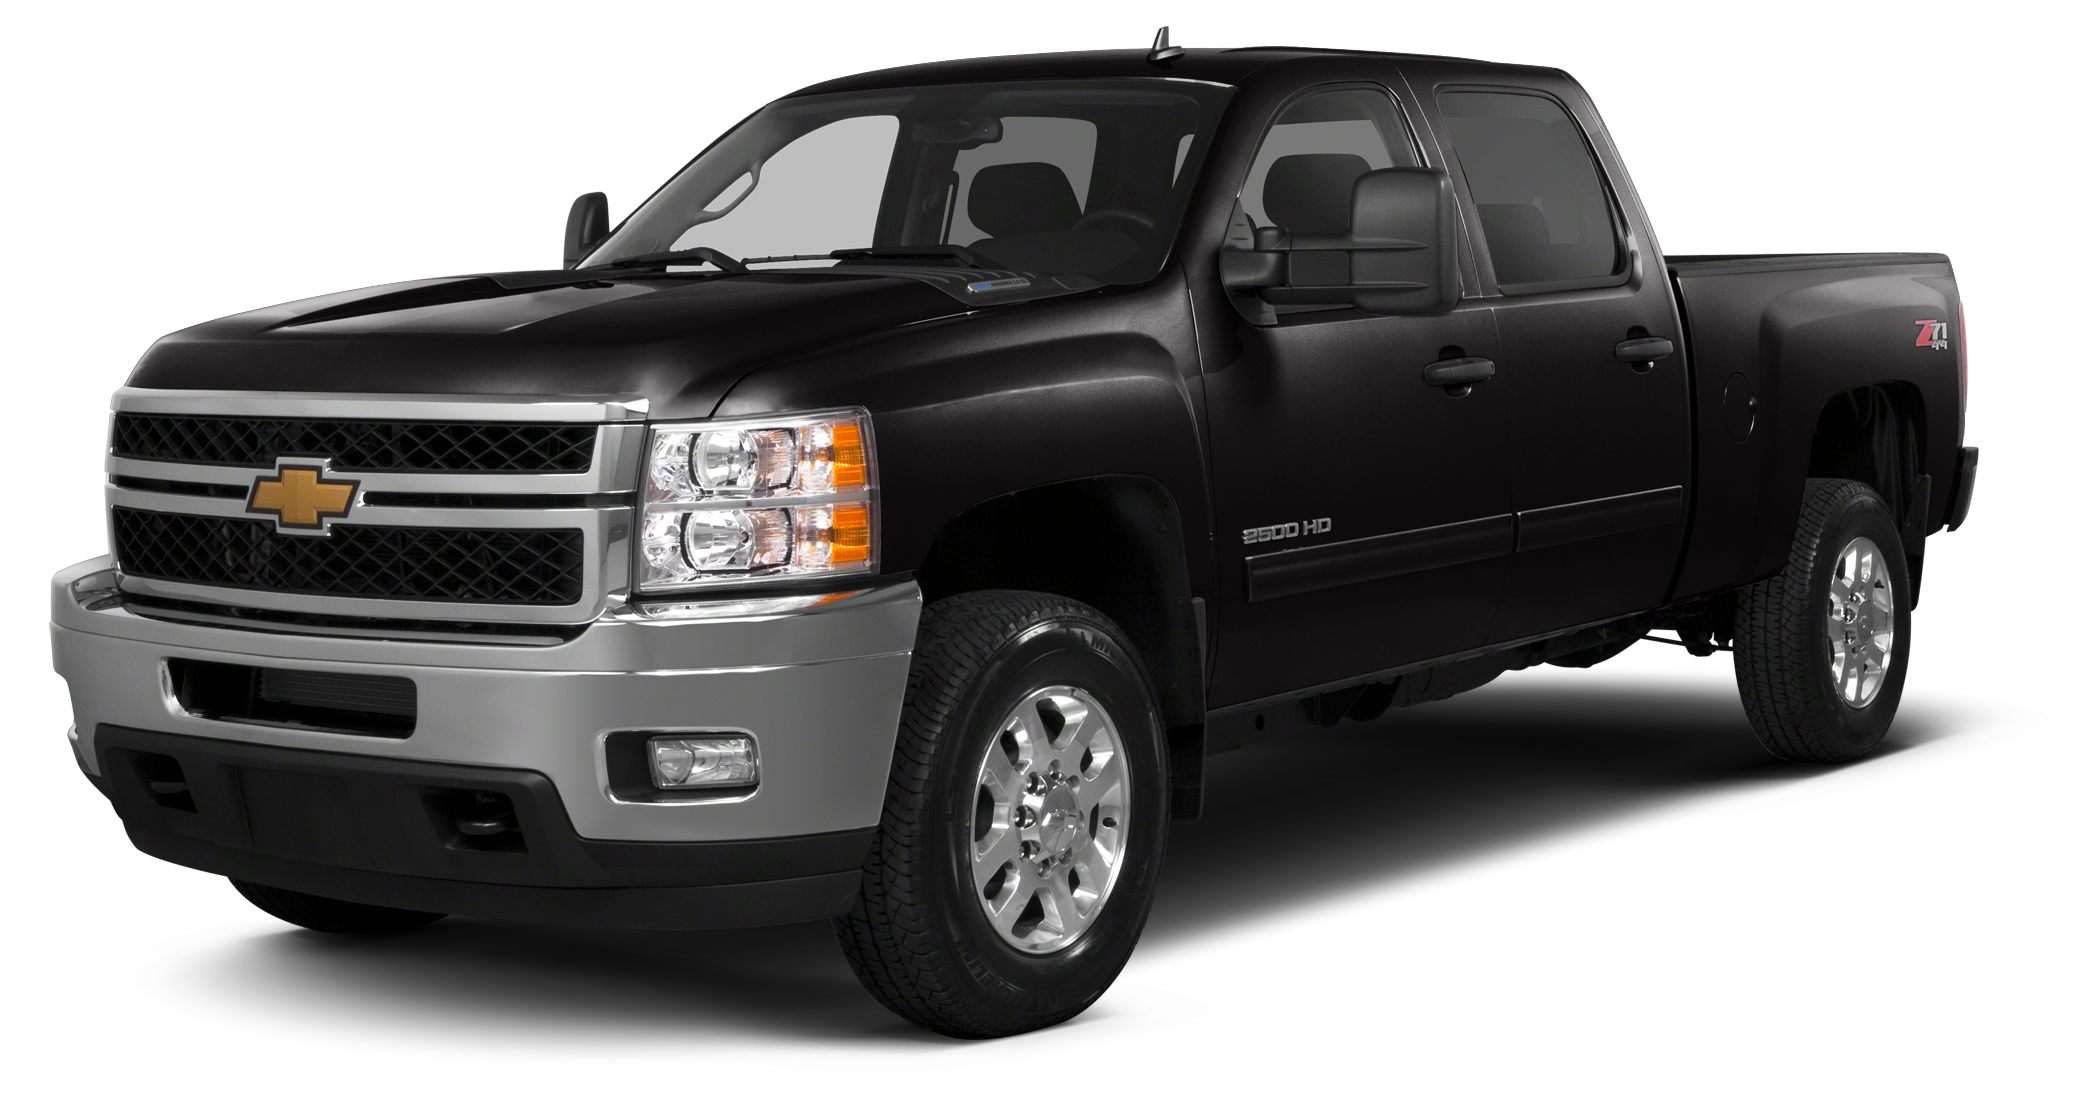 2013 Chevrolet Silverado 3500HD LTZ Carfax One Owner - Carfax Guarantee This 2013 Chevrolet Sil